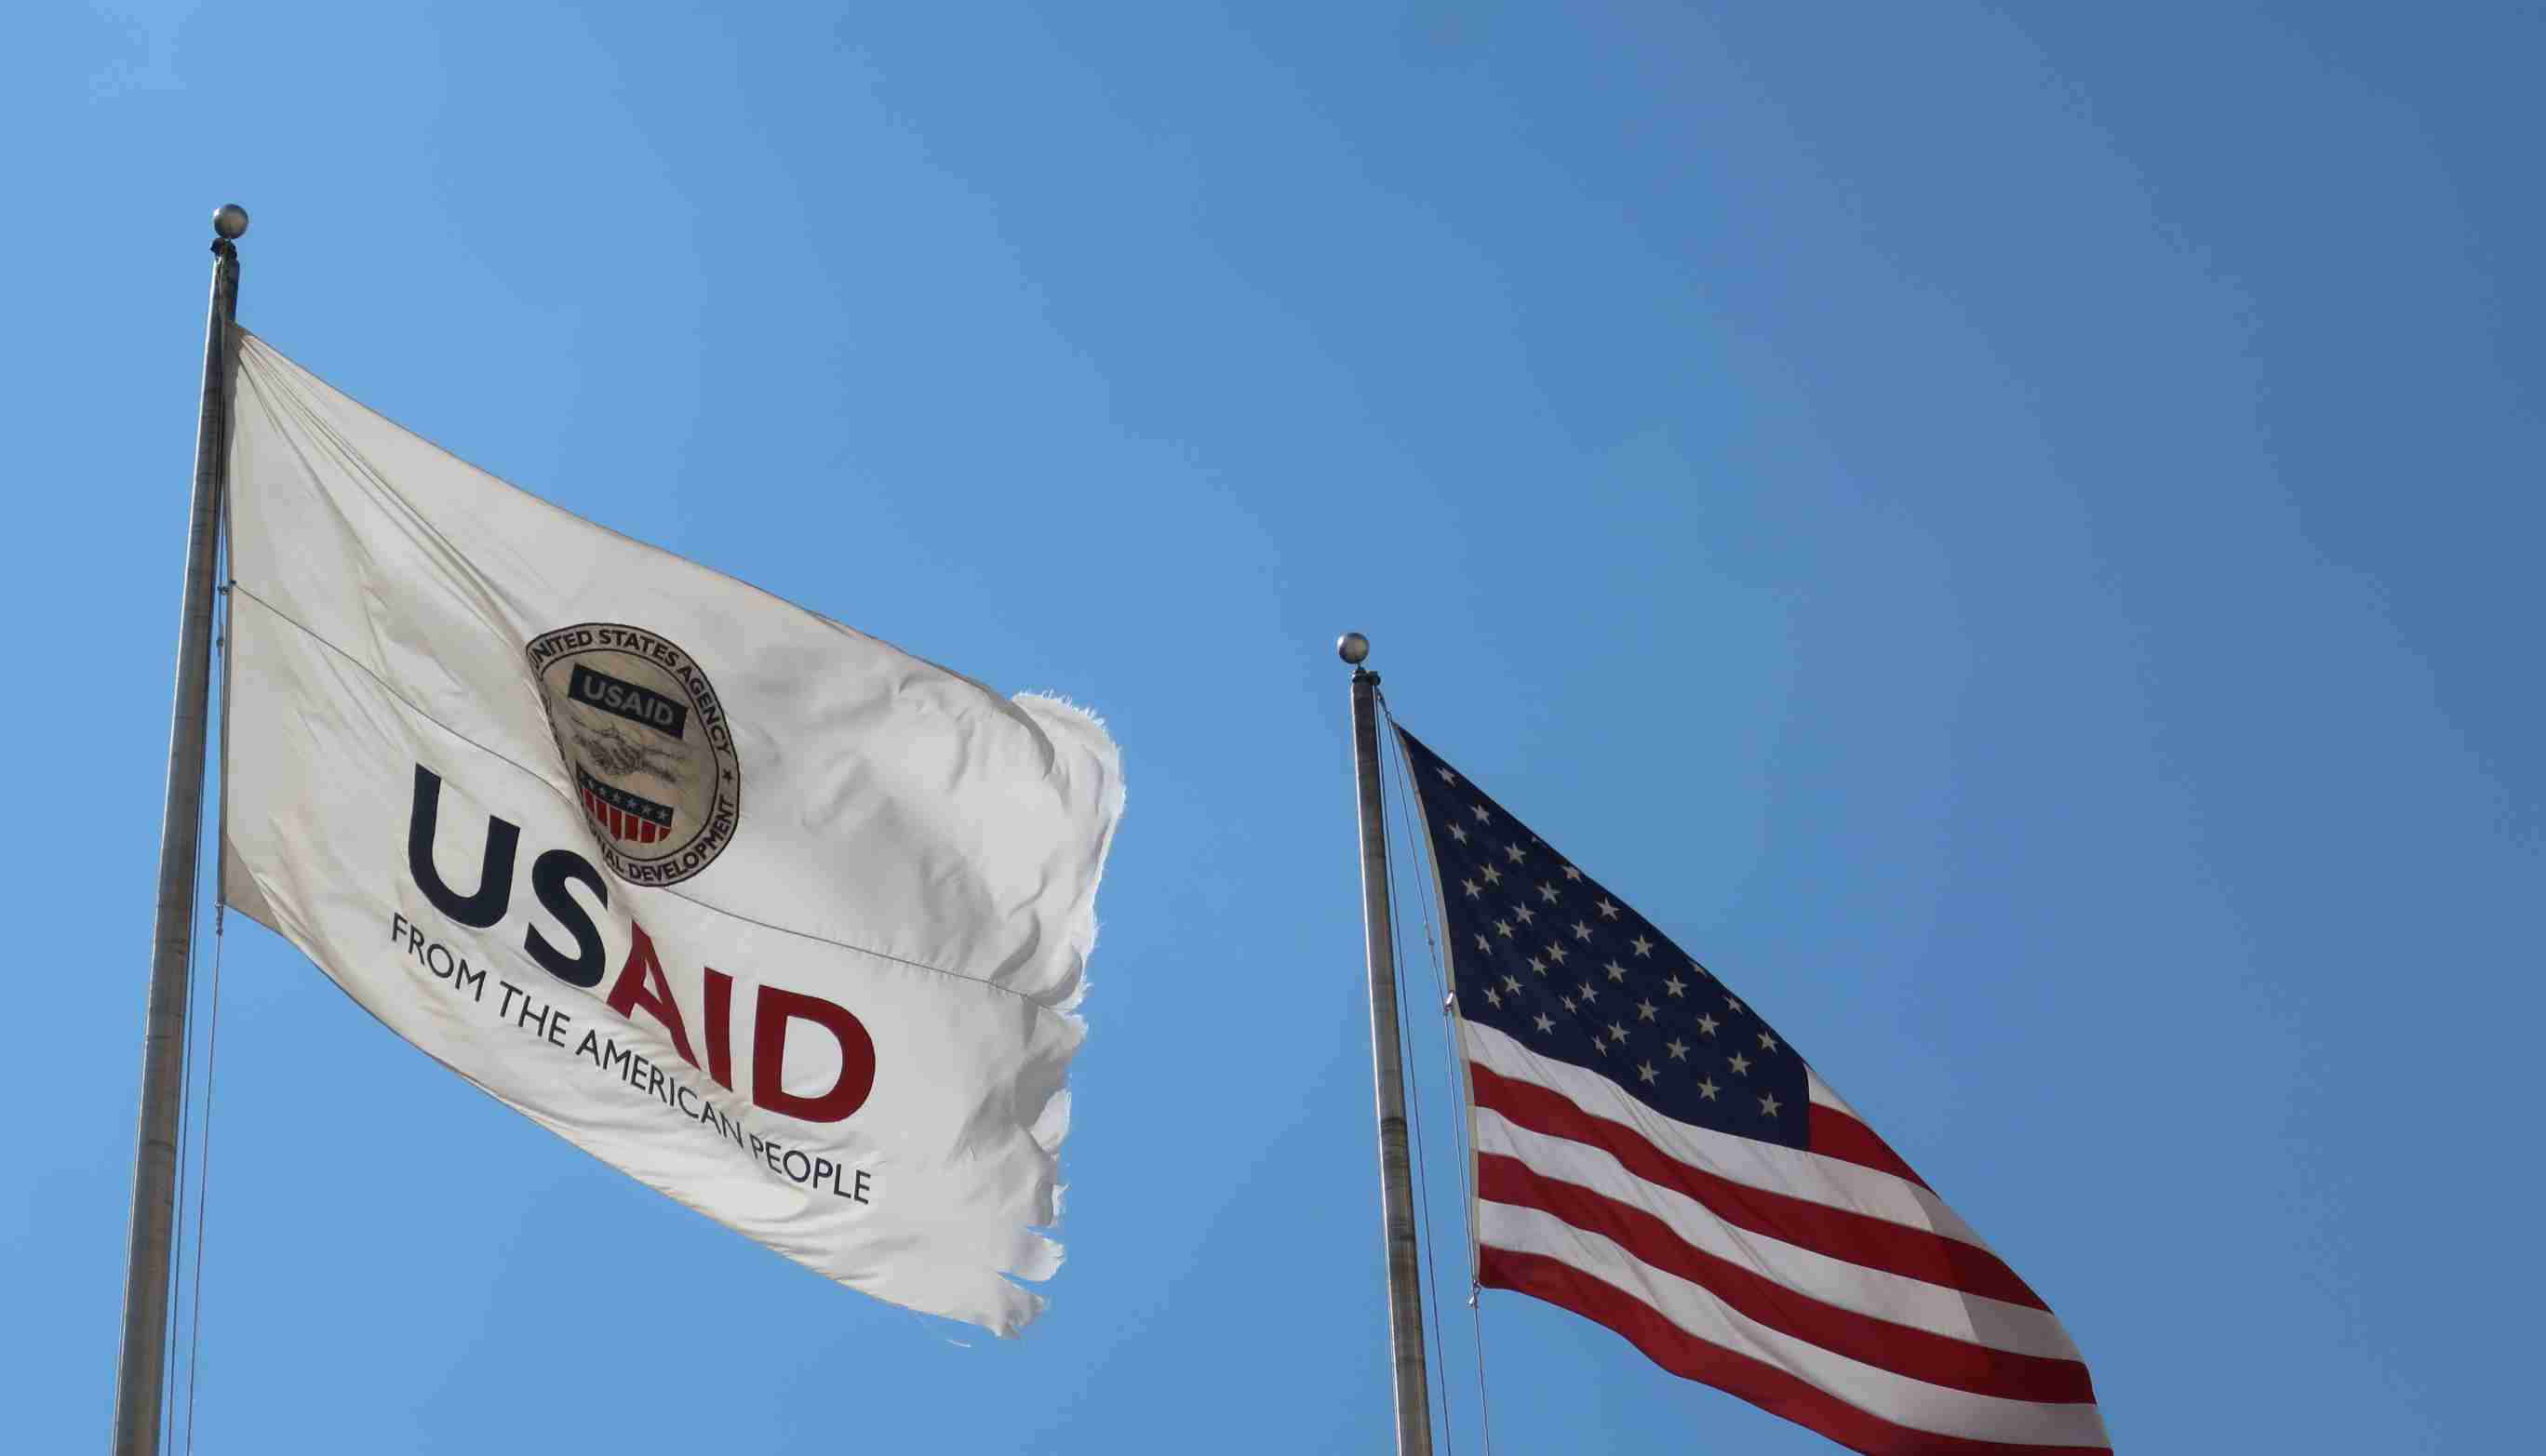 WASHINGTON - AUGUST 2, 2020: USAID Agency for International Development flag with emblem seal outside headquarters building. USAID is the agency that administers foreign aid.